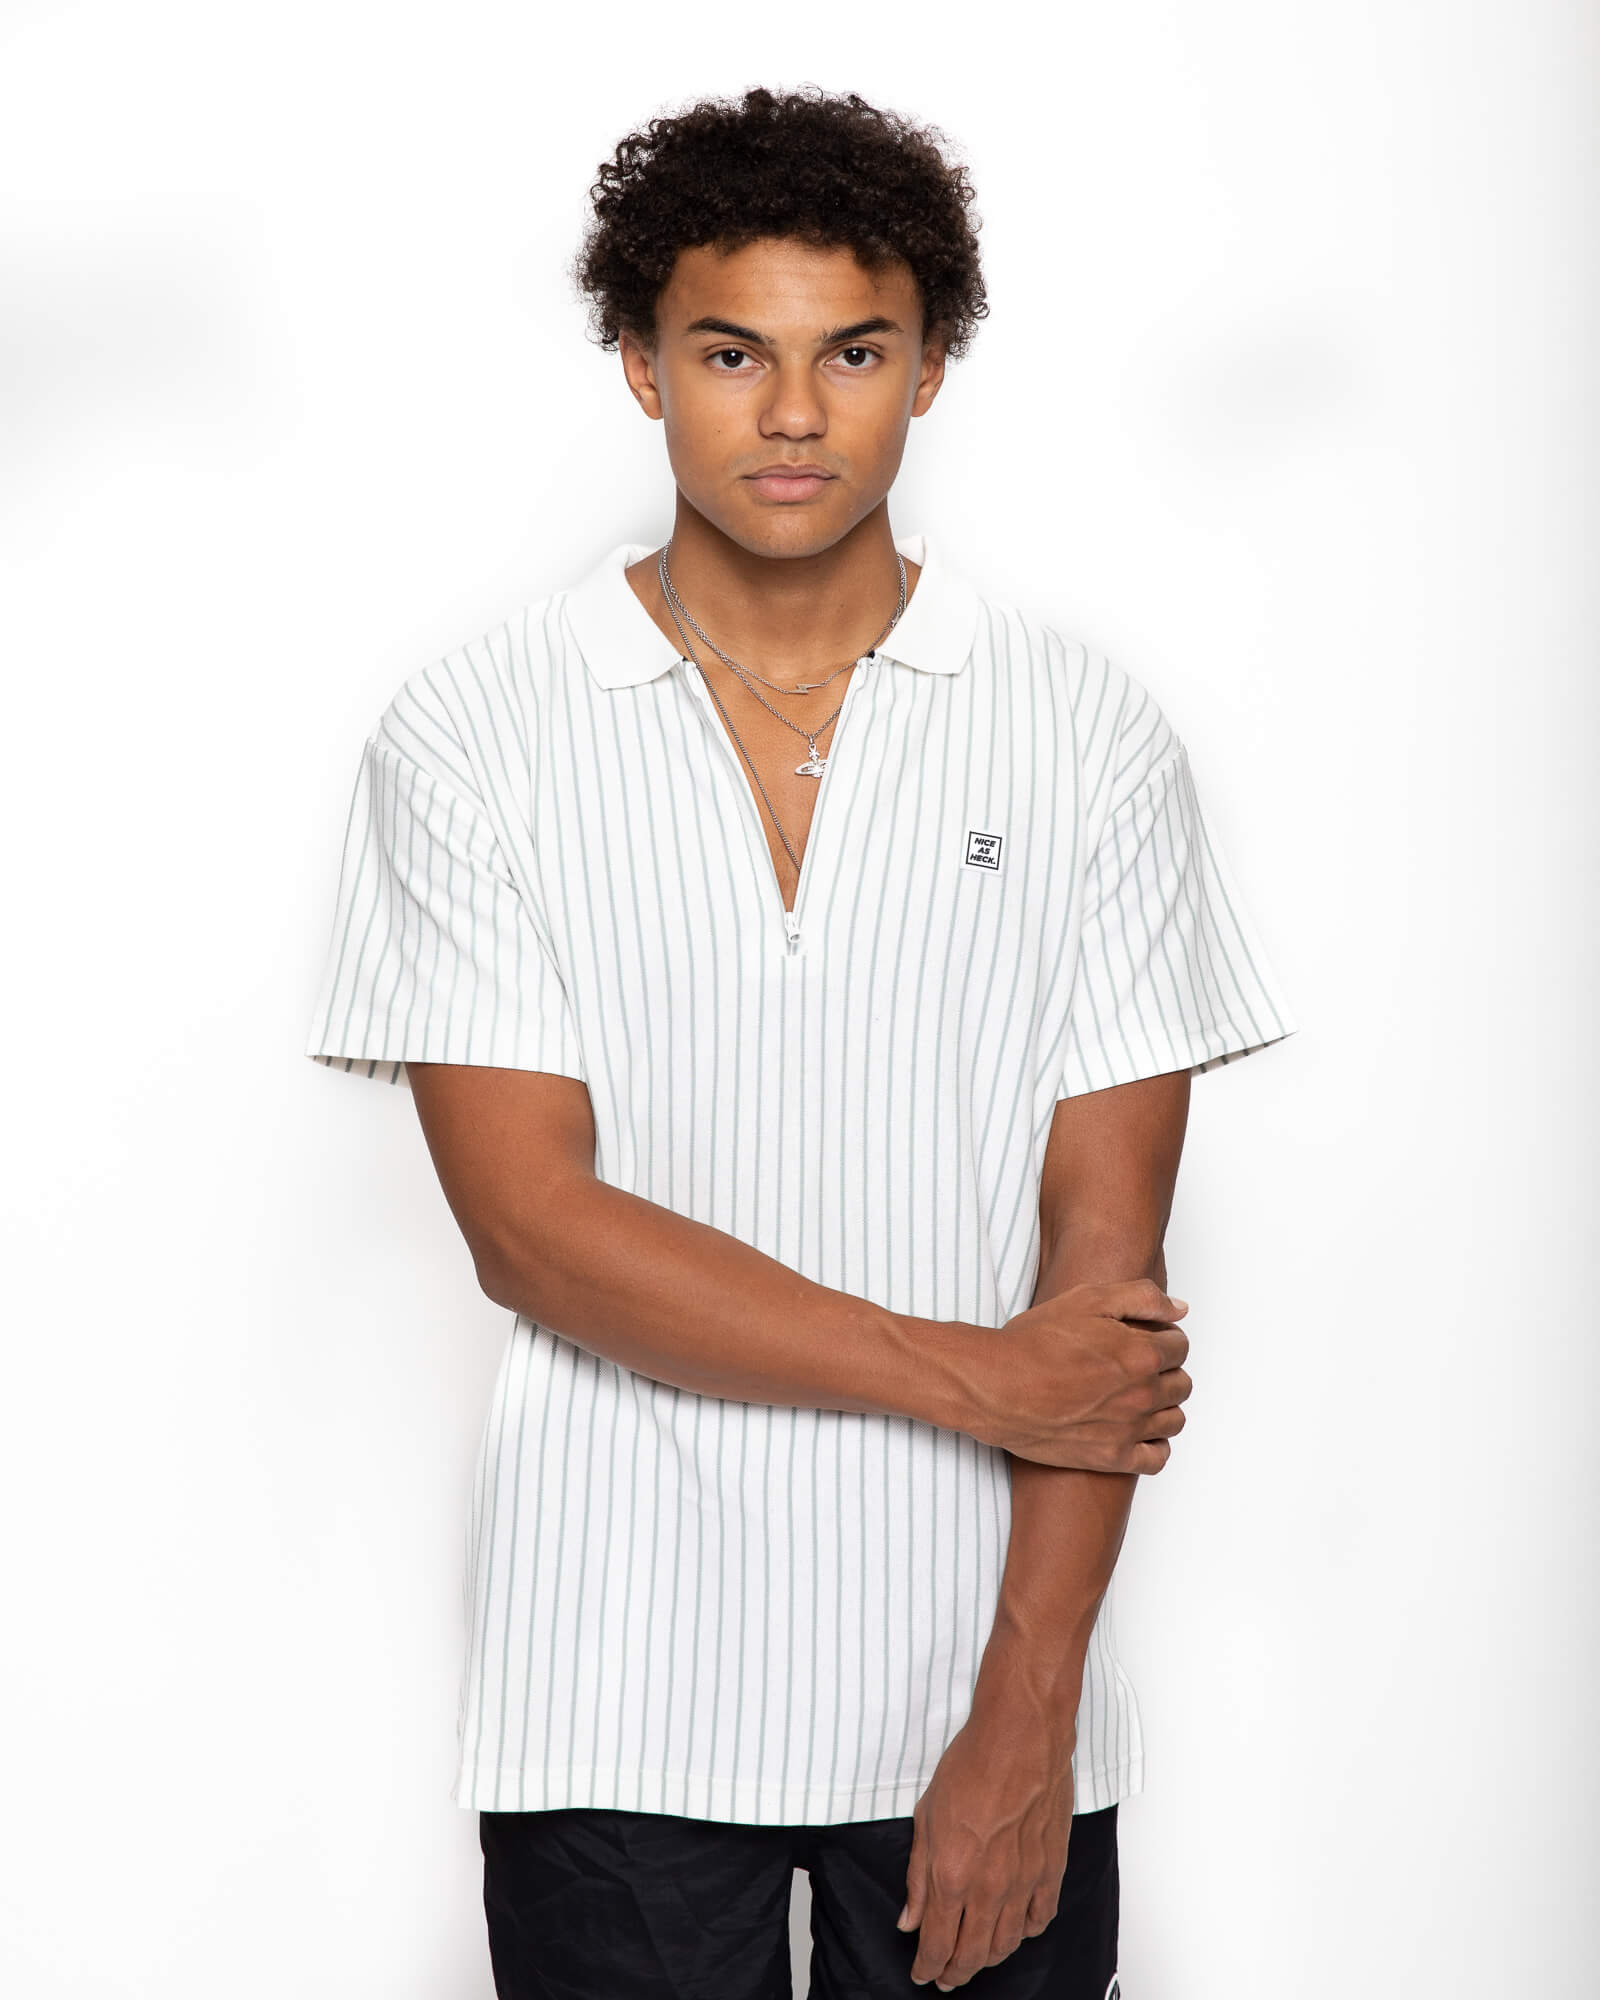 male model holding arm wearing the d plus polo